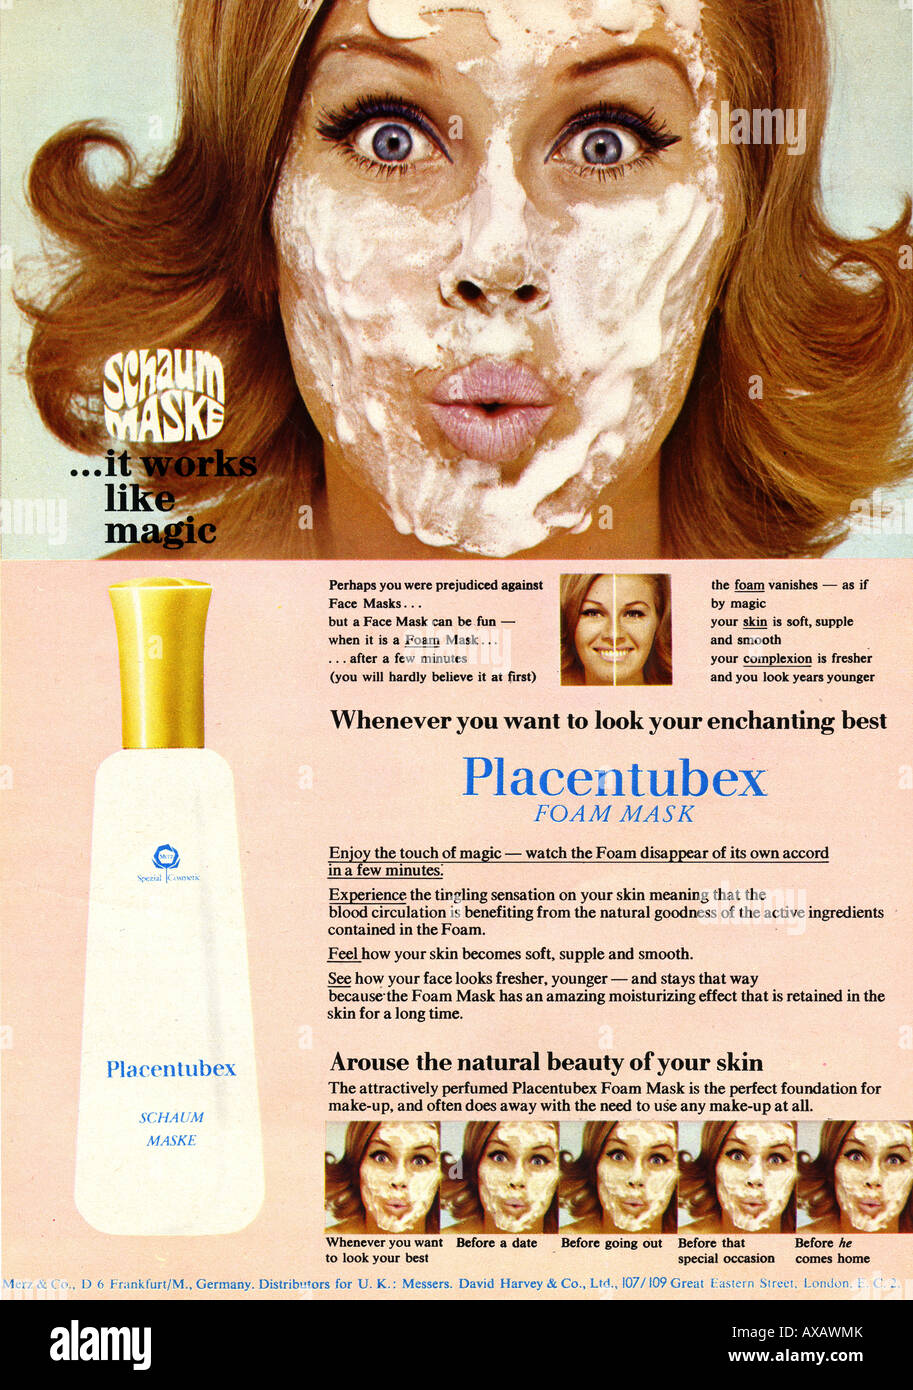 1960s April 1969 magazine advertisement for Placentubex Foam Face Mask FOR EDITORIAL USE ONLY - Stock Image